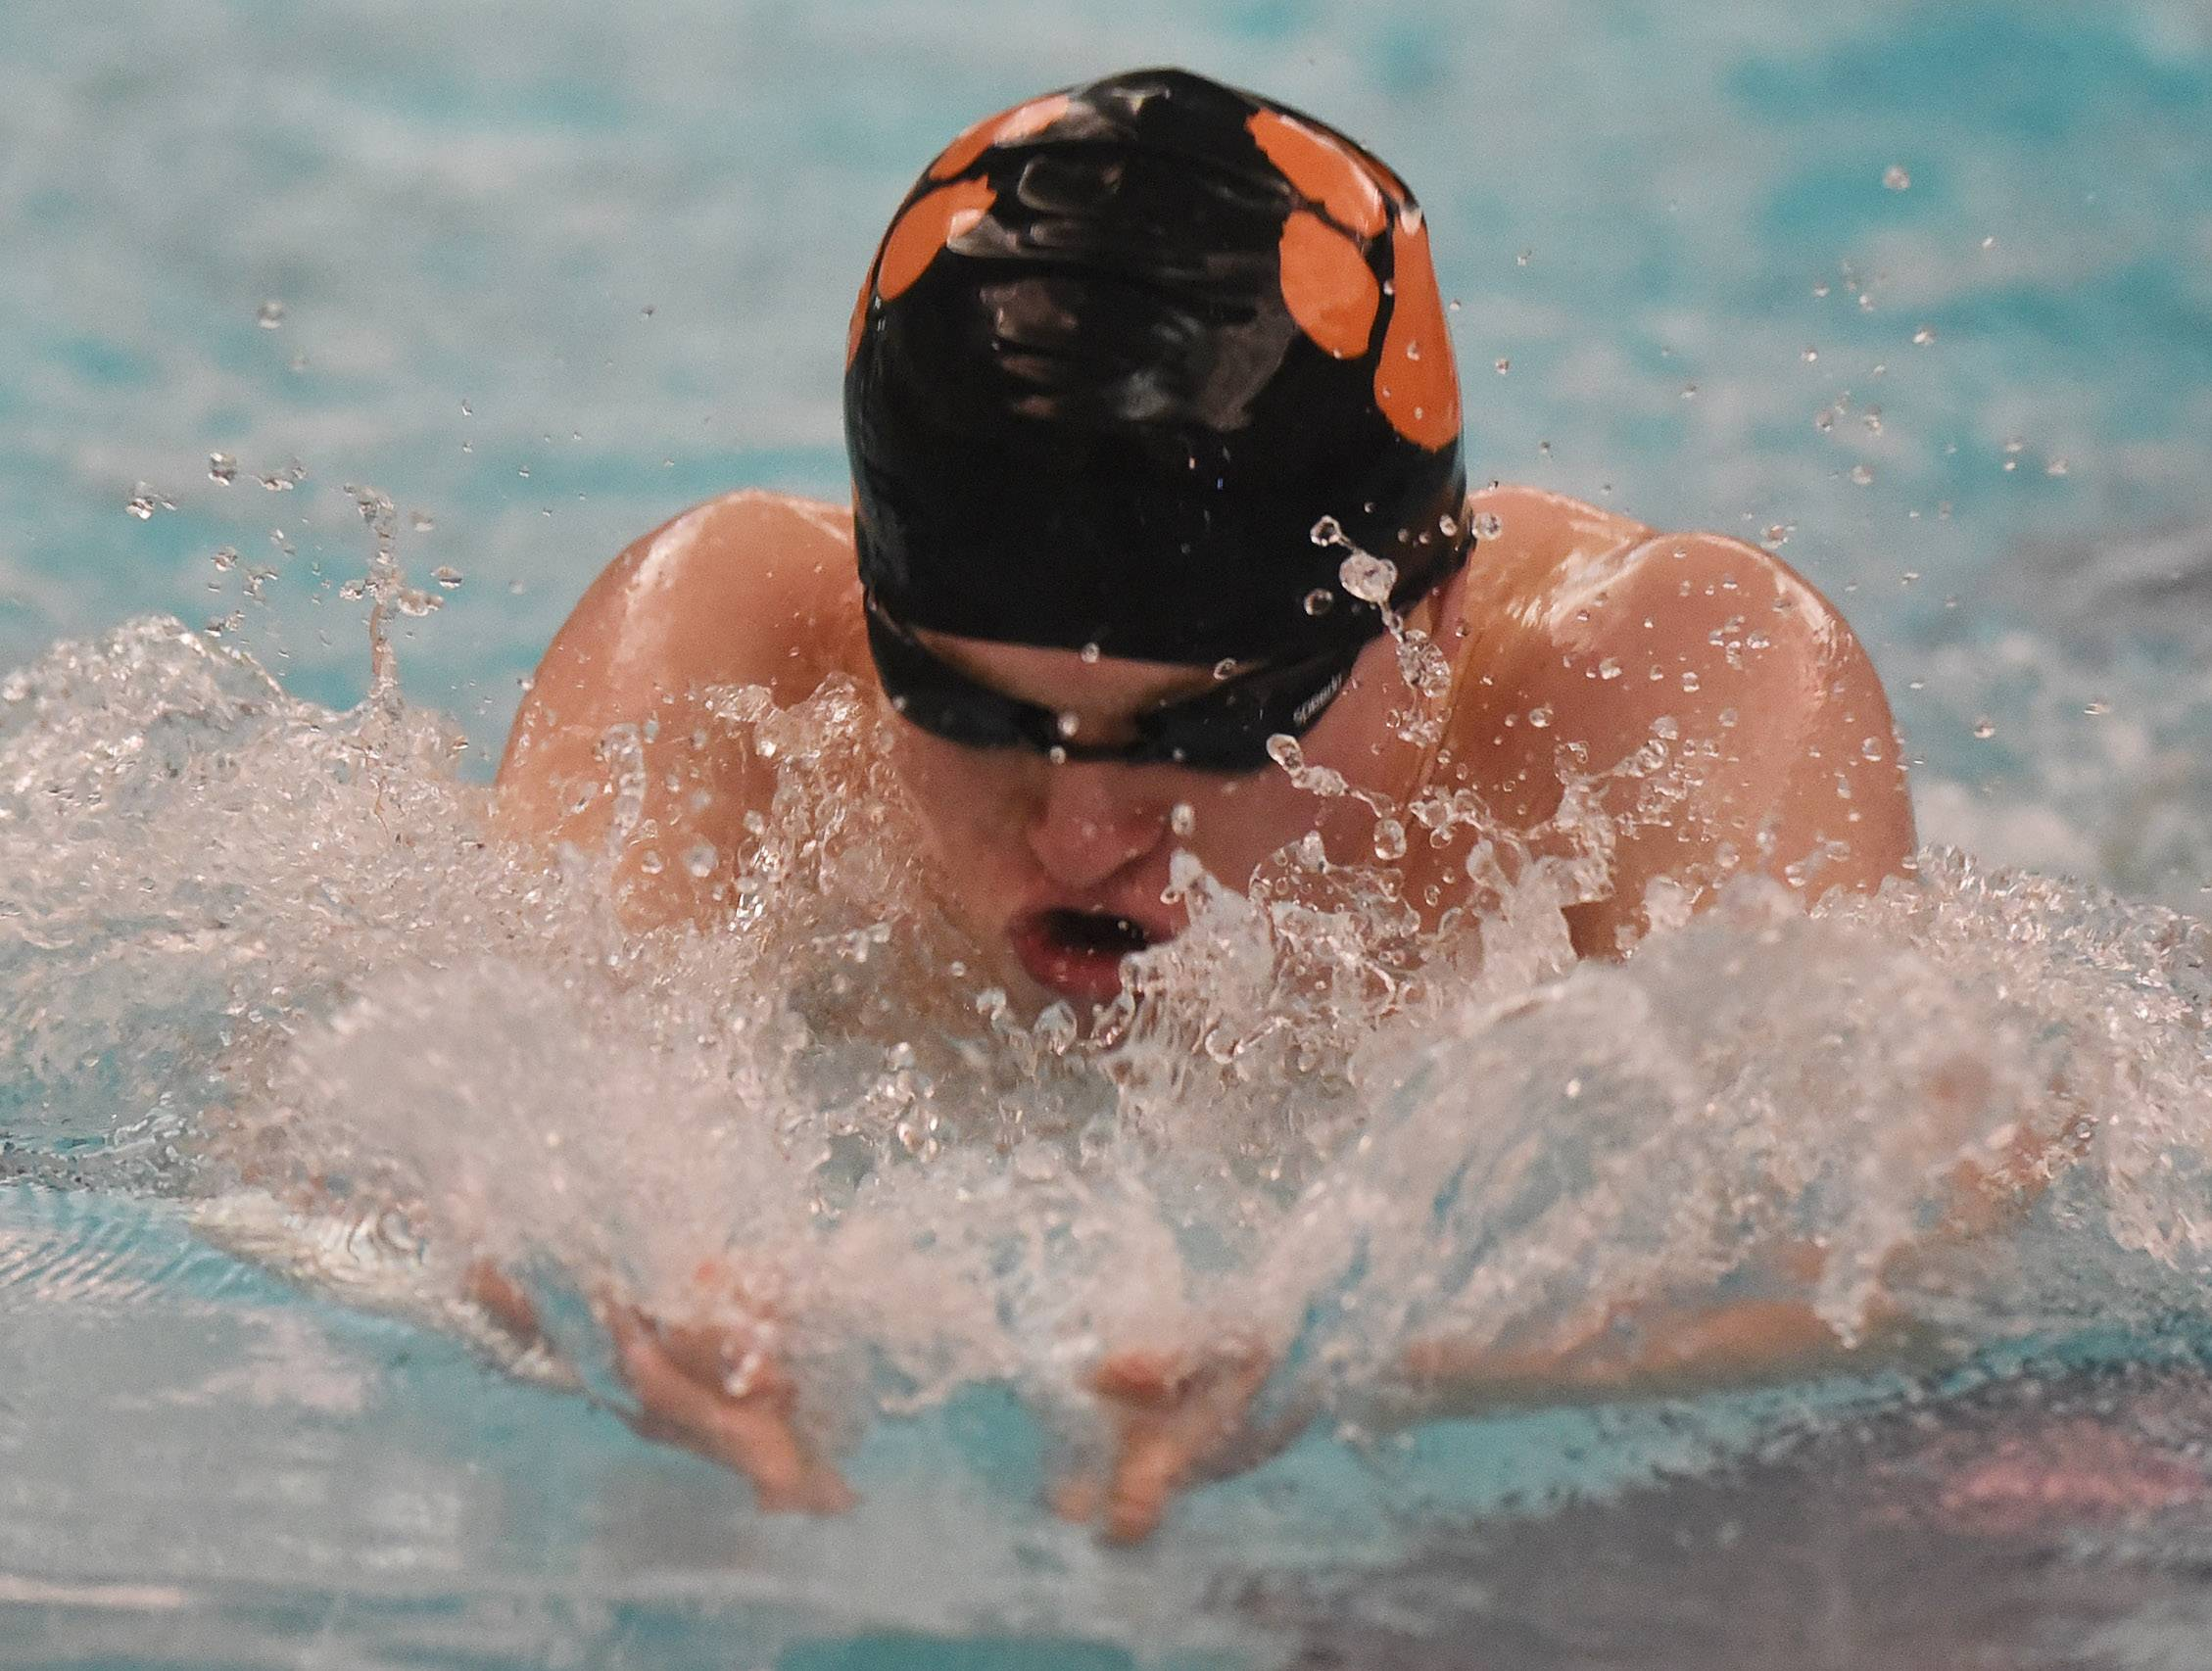 Libertyville's Noah Jamieson swims the breaststroke portion of the 200-yard IM during the North Suburban Conference boys swimming meet at Vernon Hills on Saturday.